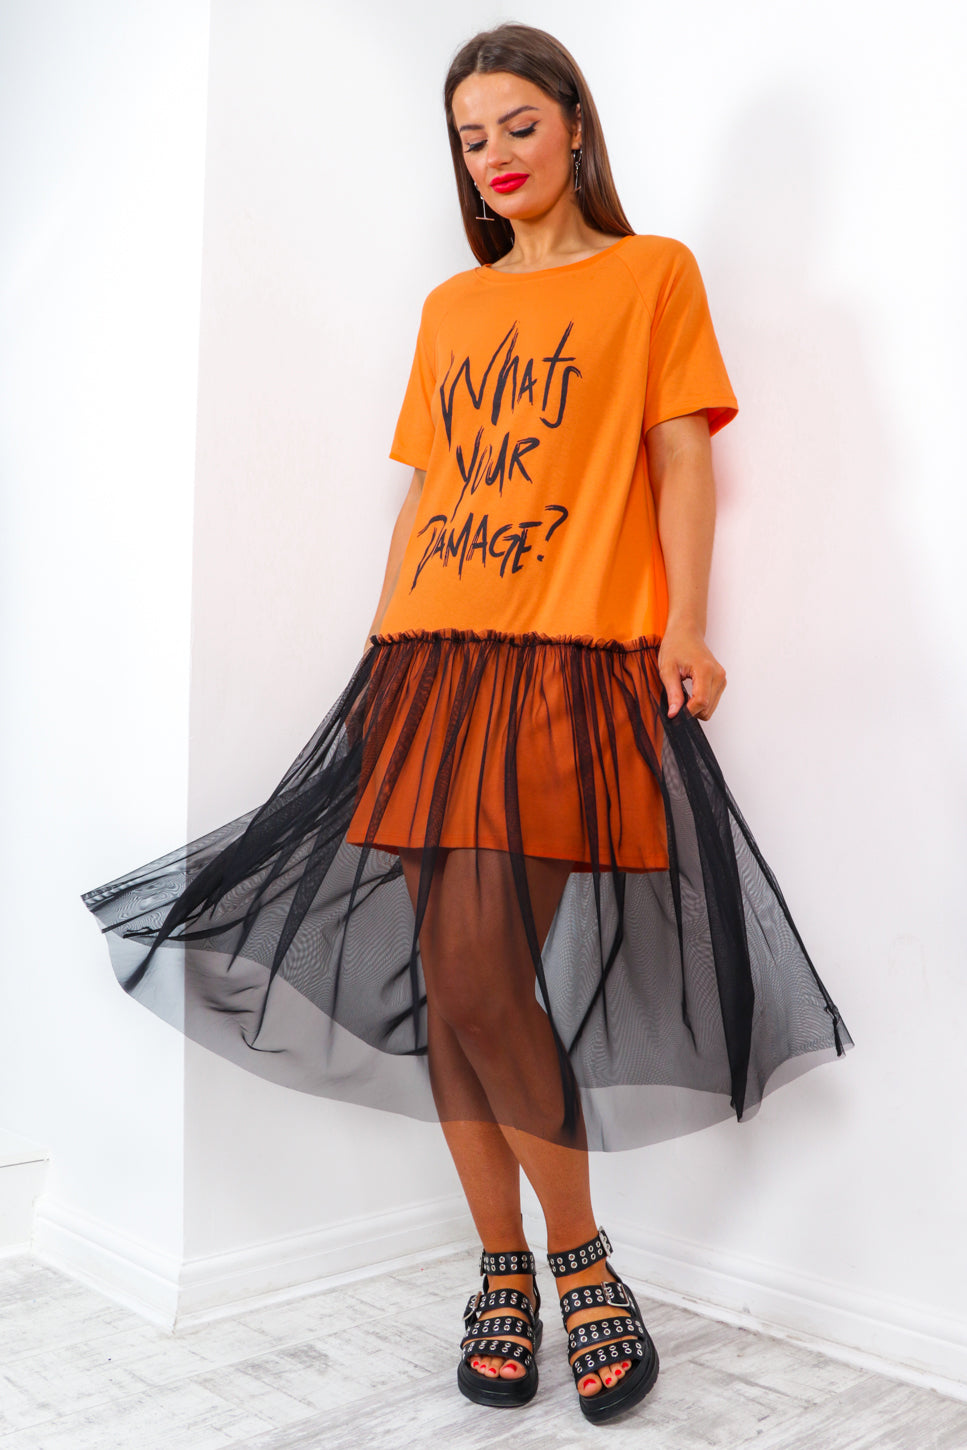 What's Your Damage - Orange T-Shirt Dress